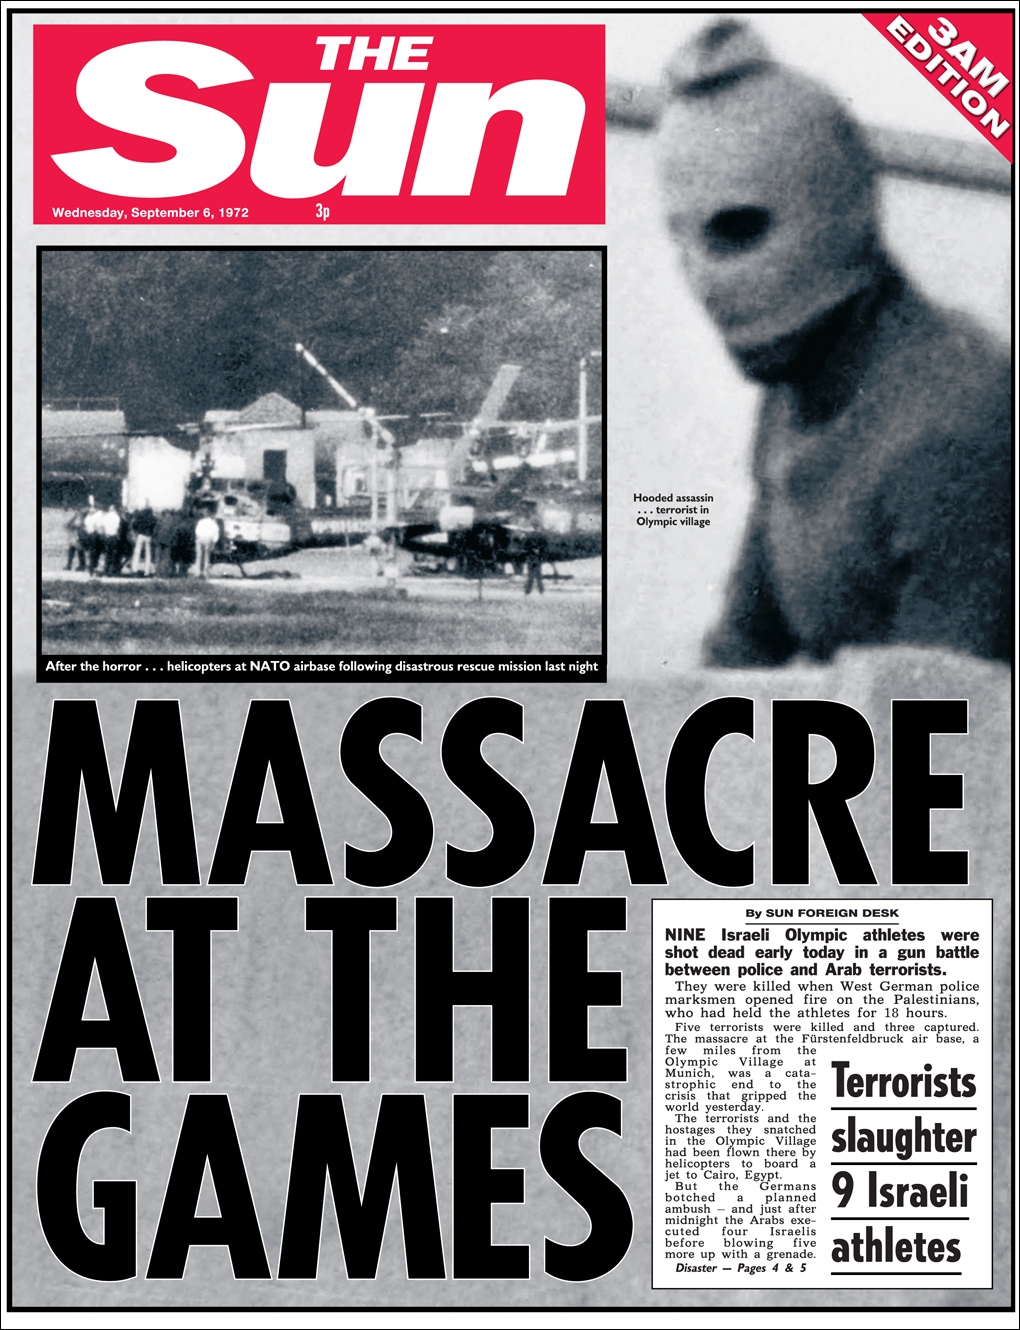 The cover of the September 6, 1972 edition of The Sun newspaper. The Munich Olympics, the first time the Games were held in a German city since 1936, were marred by the assassination of 11 Israeli team members by when eight Palestinian militants on September 5, 1972.